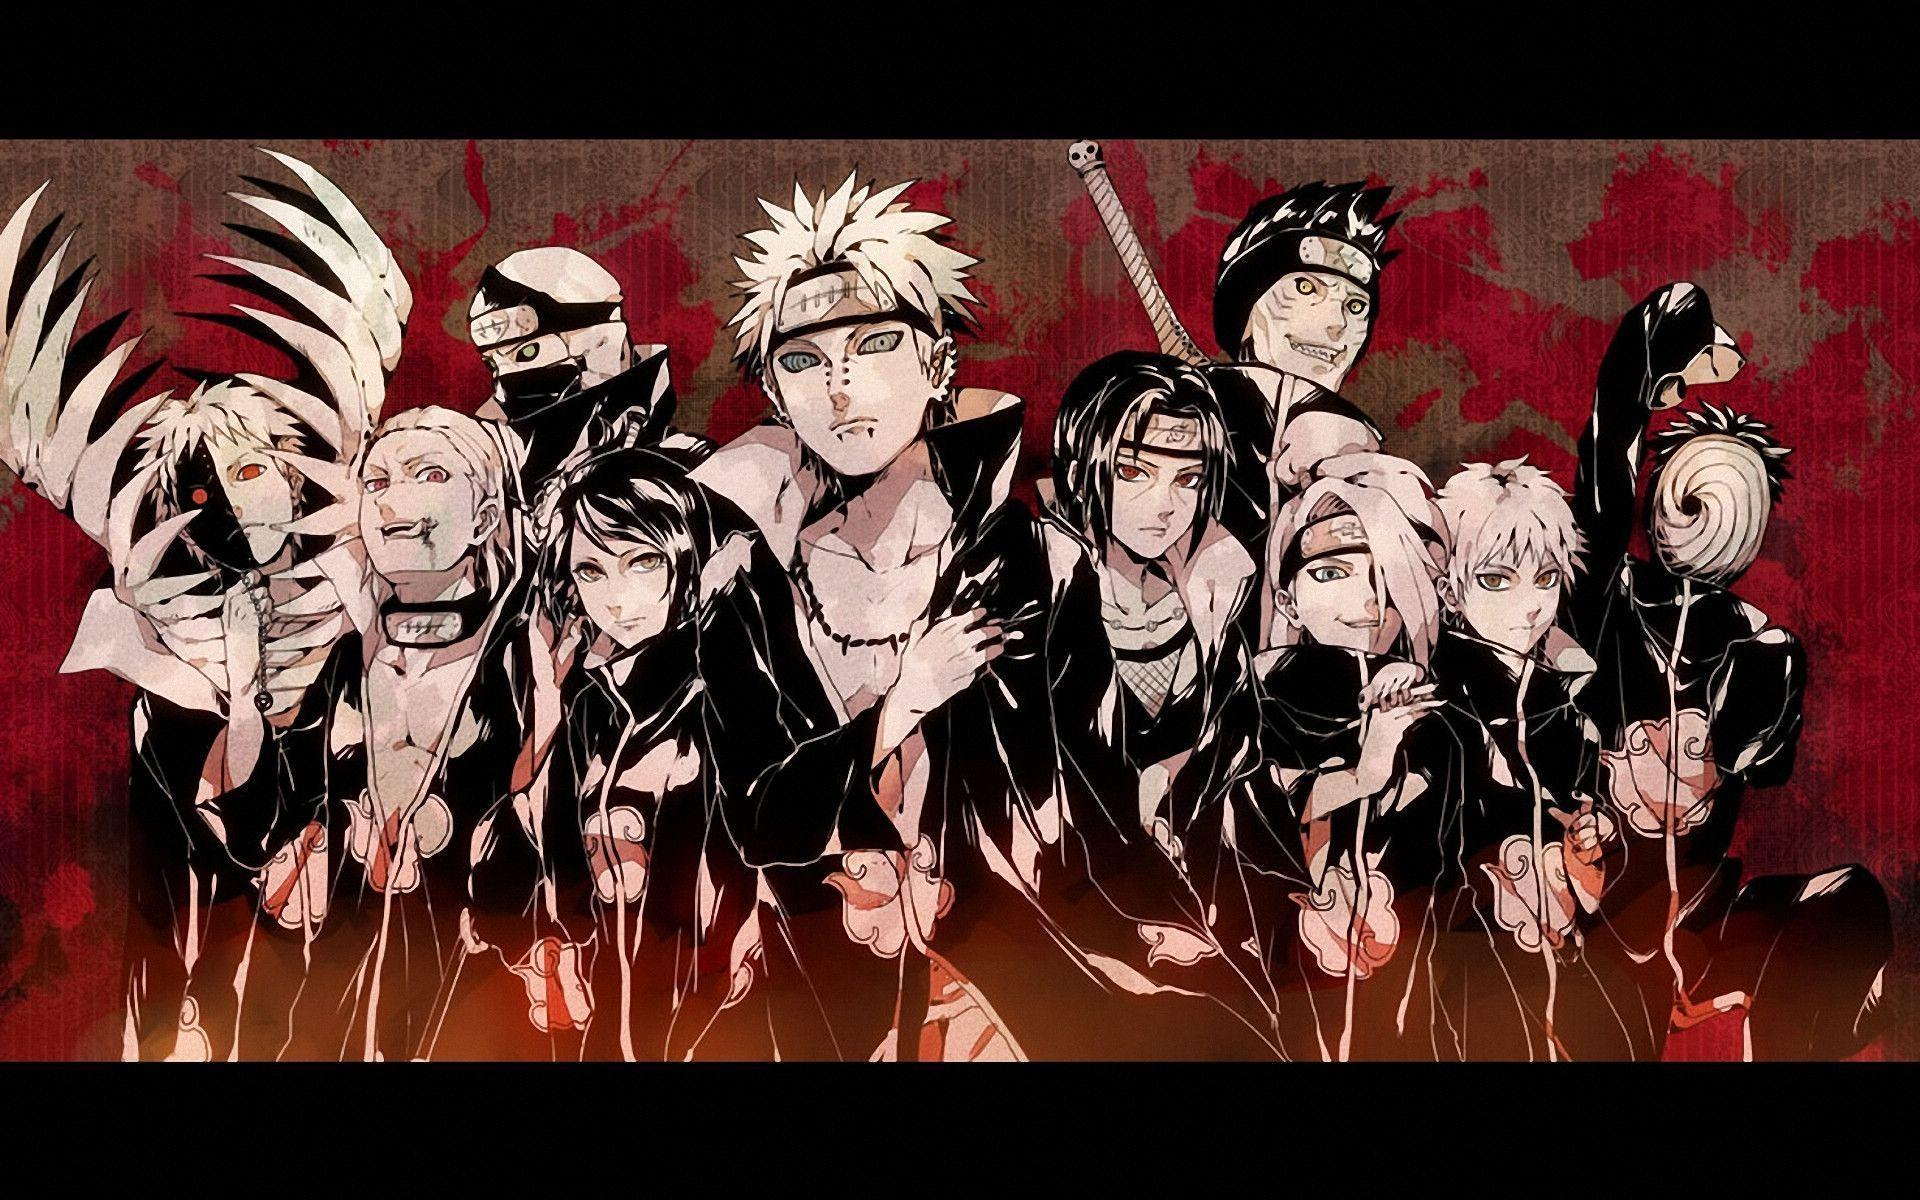 Cool Wallpaper Macbook Naruto - 2fuB4nA  Pictures_293182.jpg